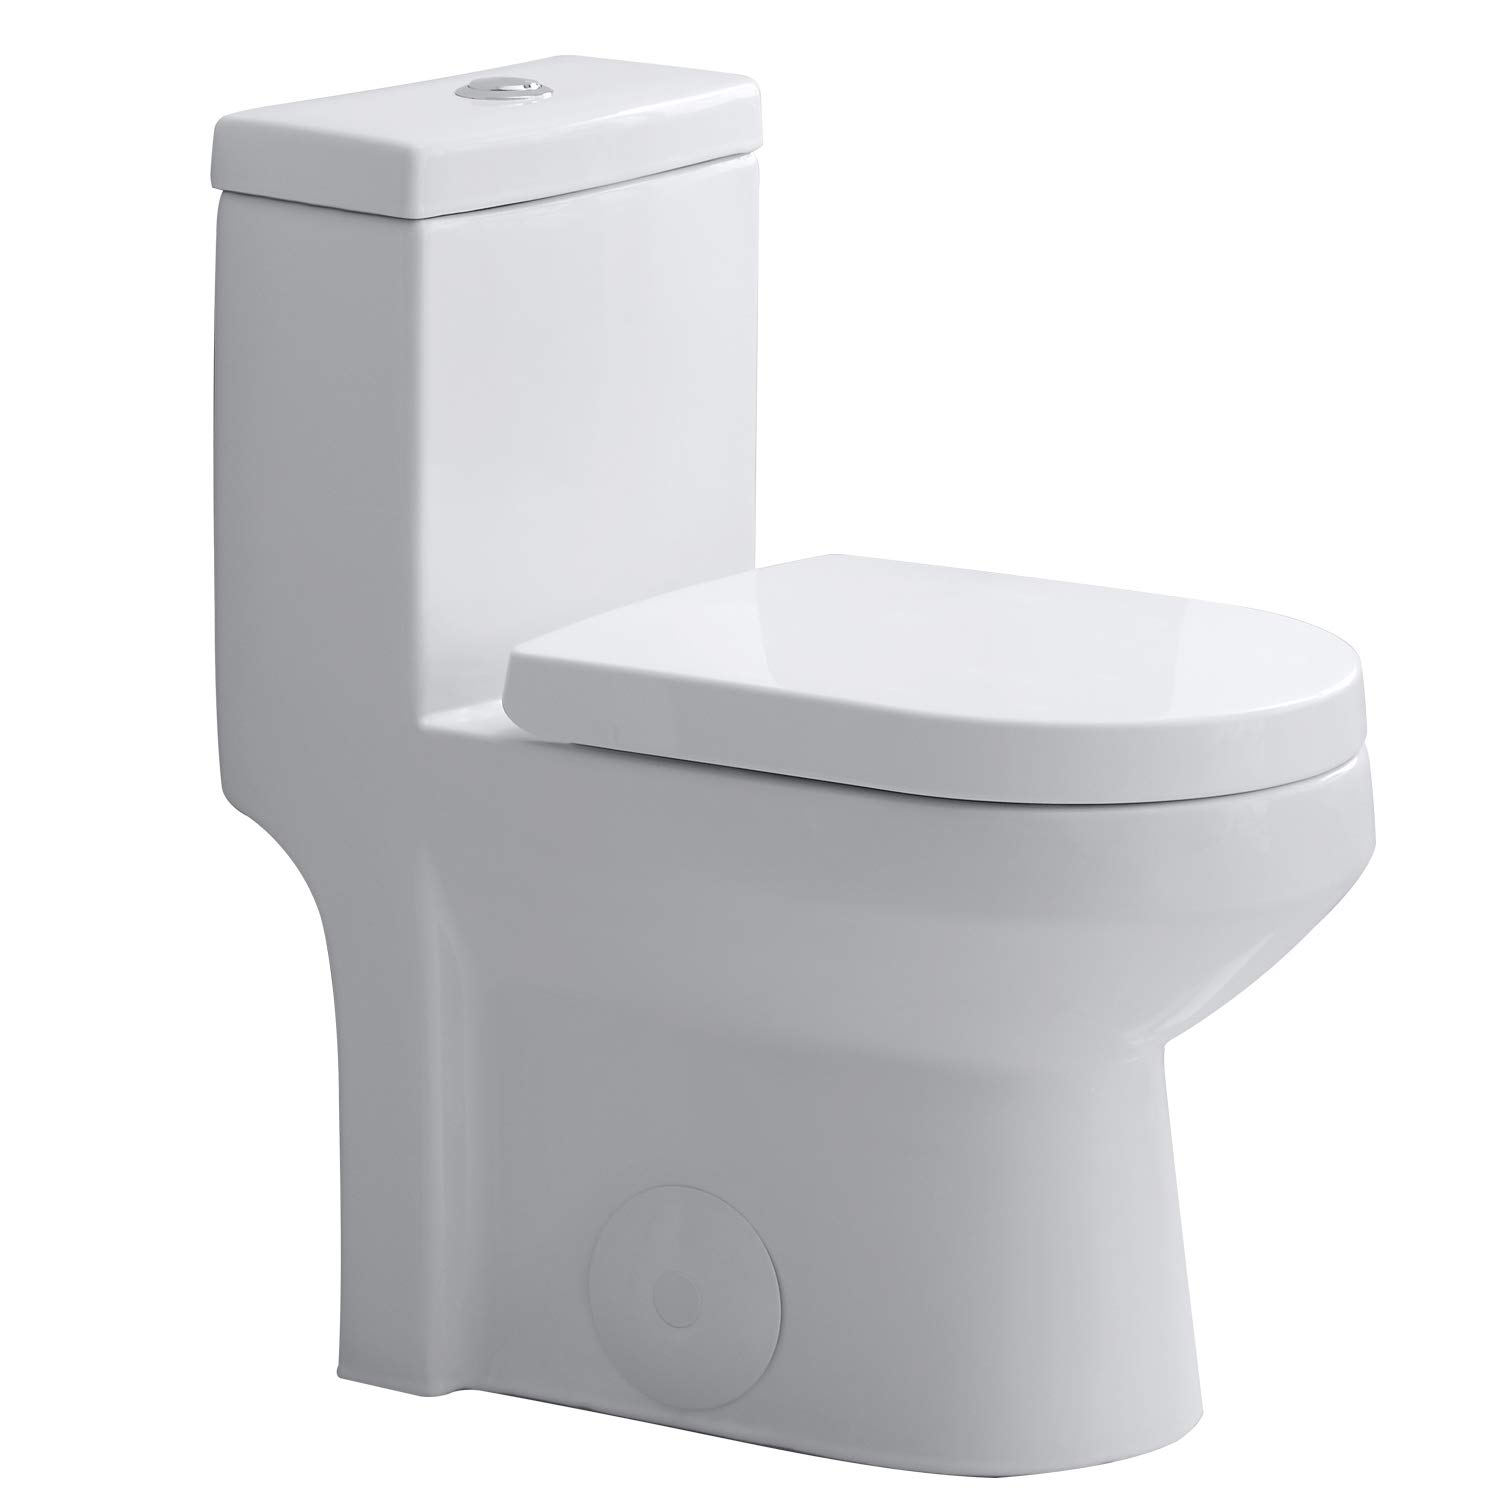 HOROW HWMT-8733 Small Toilet 25'' Long x 13.4'' Wide x 28.4'' High One Piece Short Compact Bathroom Tiny Mini Commode Water Closet Dual Flush Concealed Trapway by HOROW